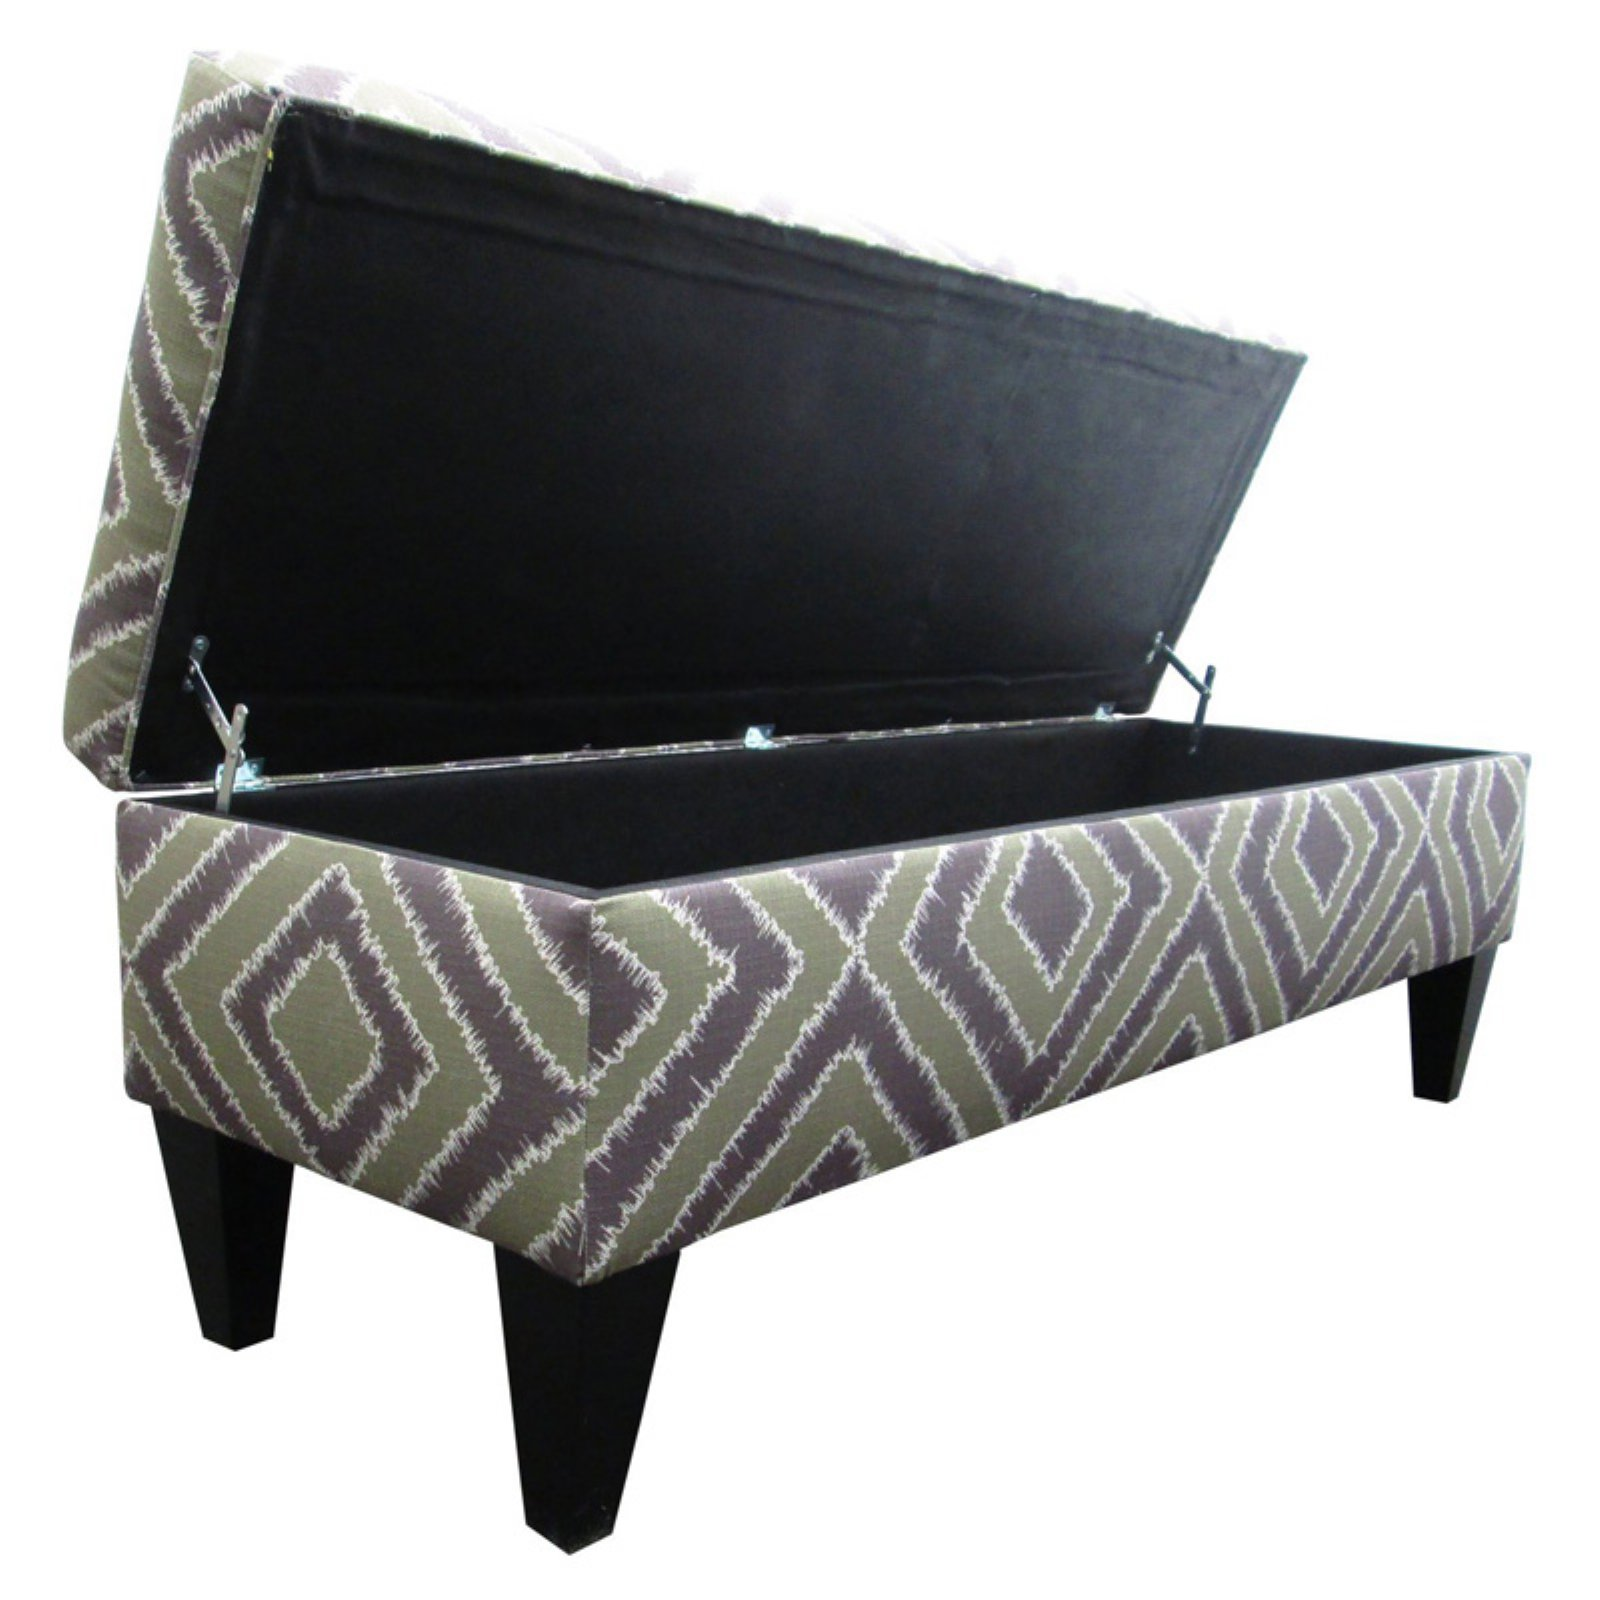 Sole Designs Nouvea Collection Upholstered Storage Bench with Built in Storage